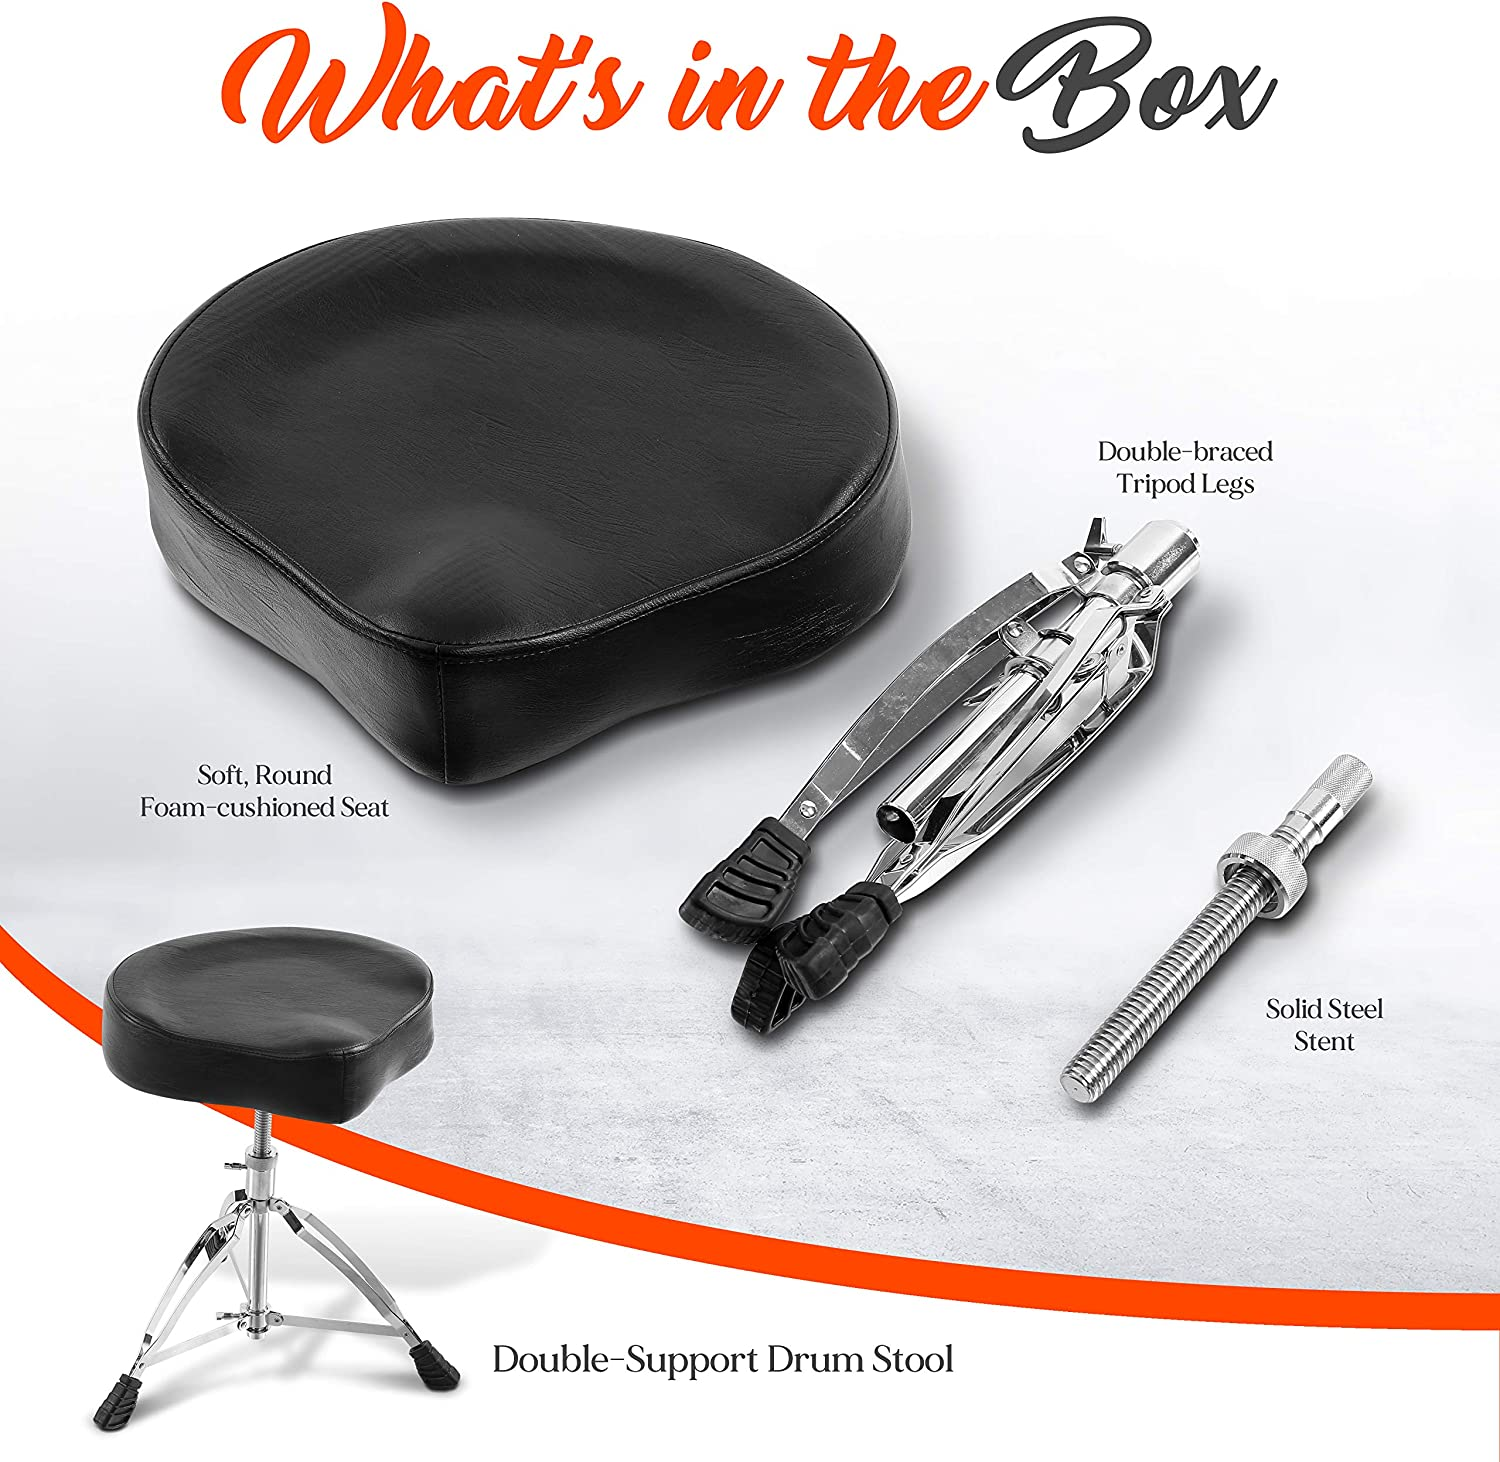 Perfect for On Stage and in-Studio Use PSEATDRM24 Soft /& Round Foam-Cushioned Seat Pyle Pro Throne Adjustable Support Drum Stool-Durable and Portable Double-braced Tripod Legs